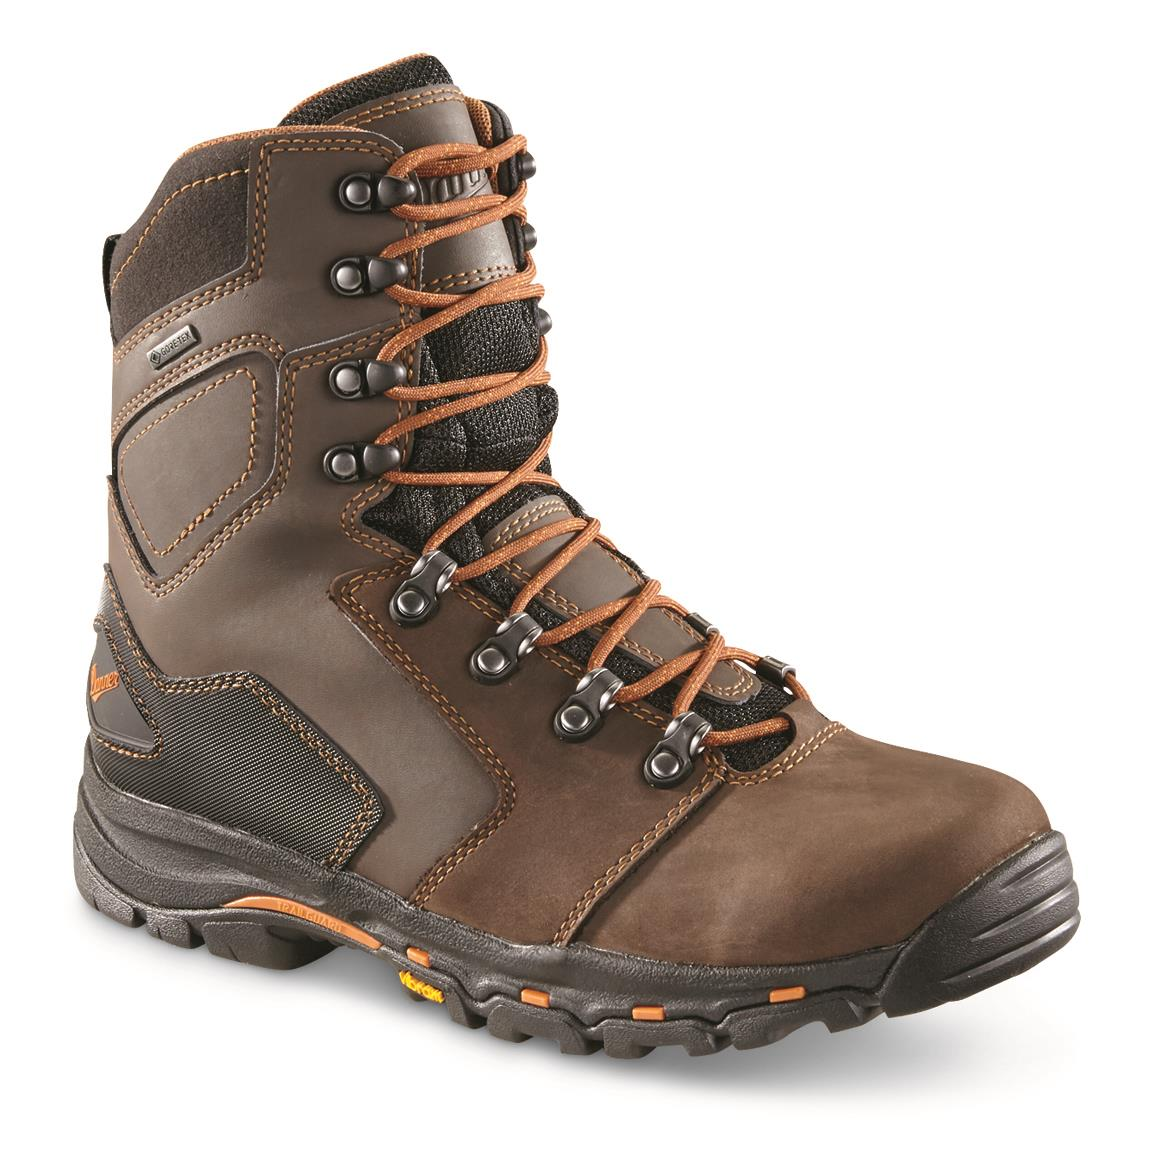 "Danner Men's Vicious Waterproof 8"" Work Boots, GORE-TEX, Brown"